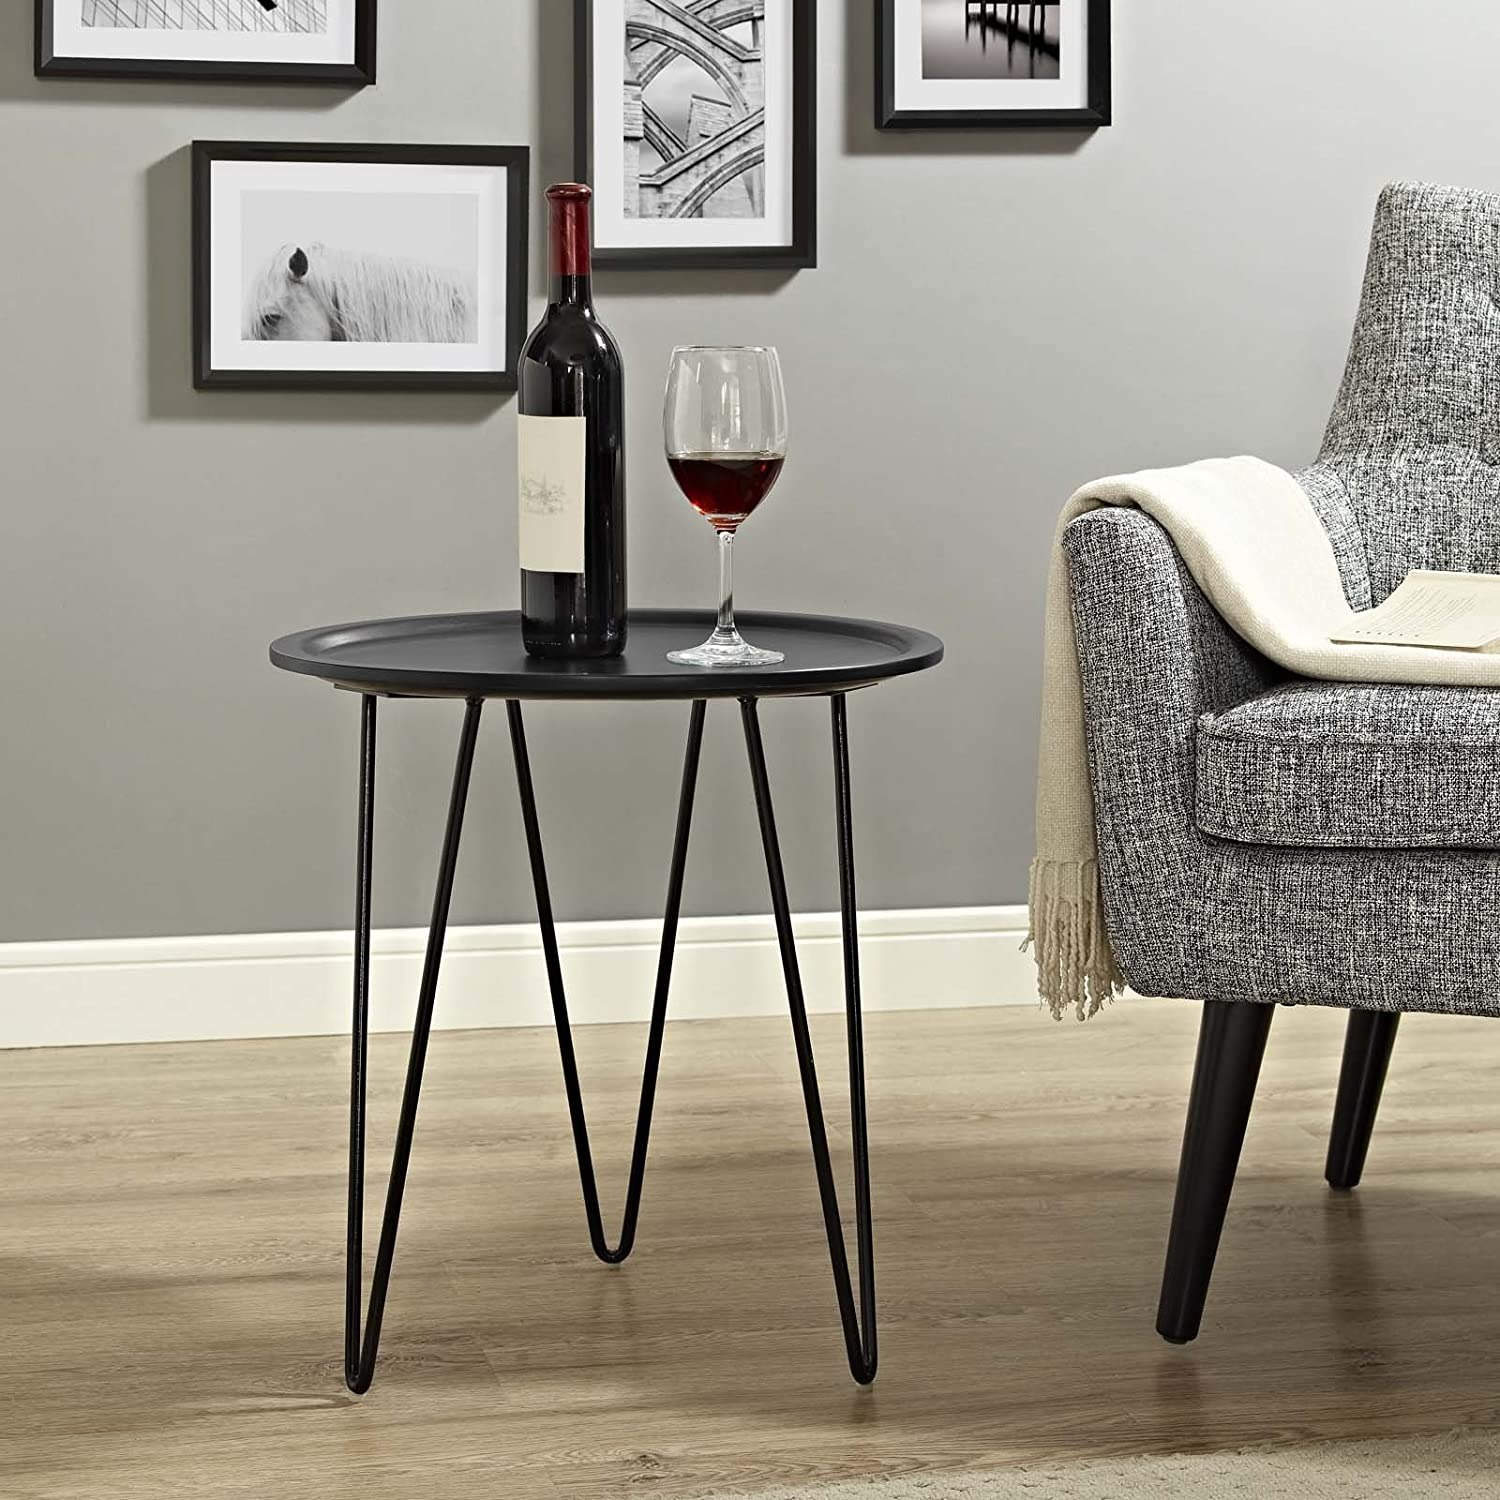 Mid-Century Style Side Table In Black Matte Finish - image-3